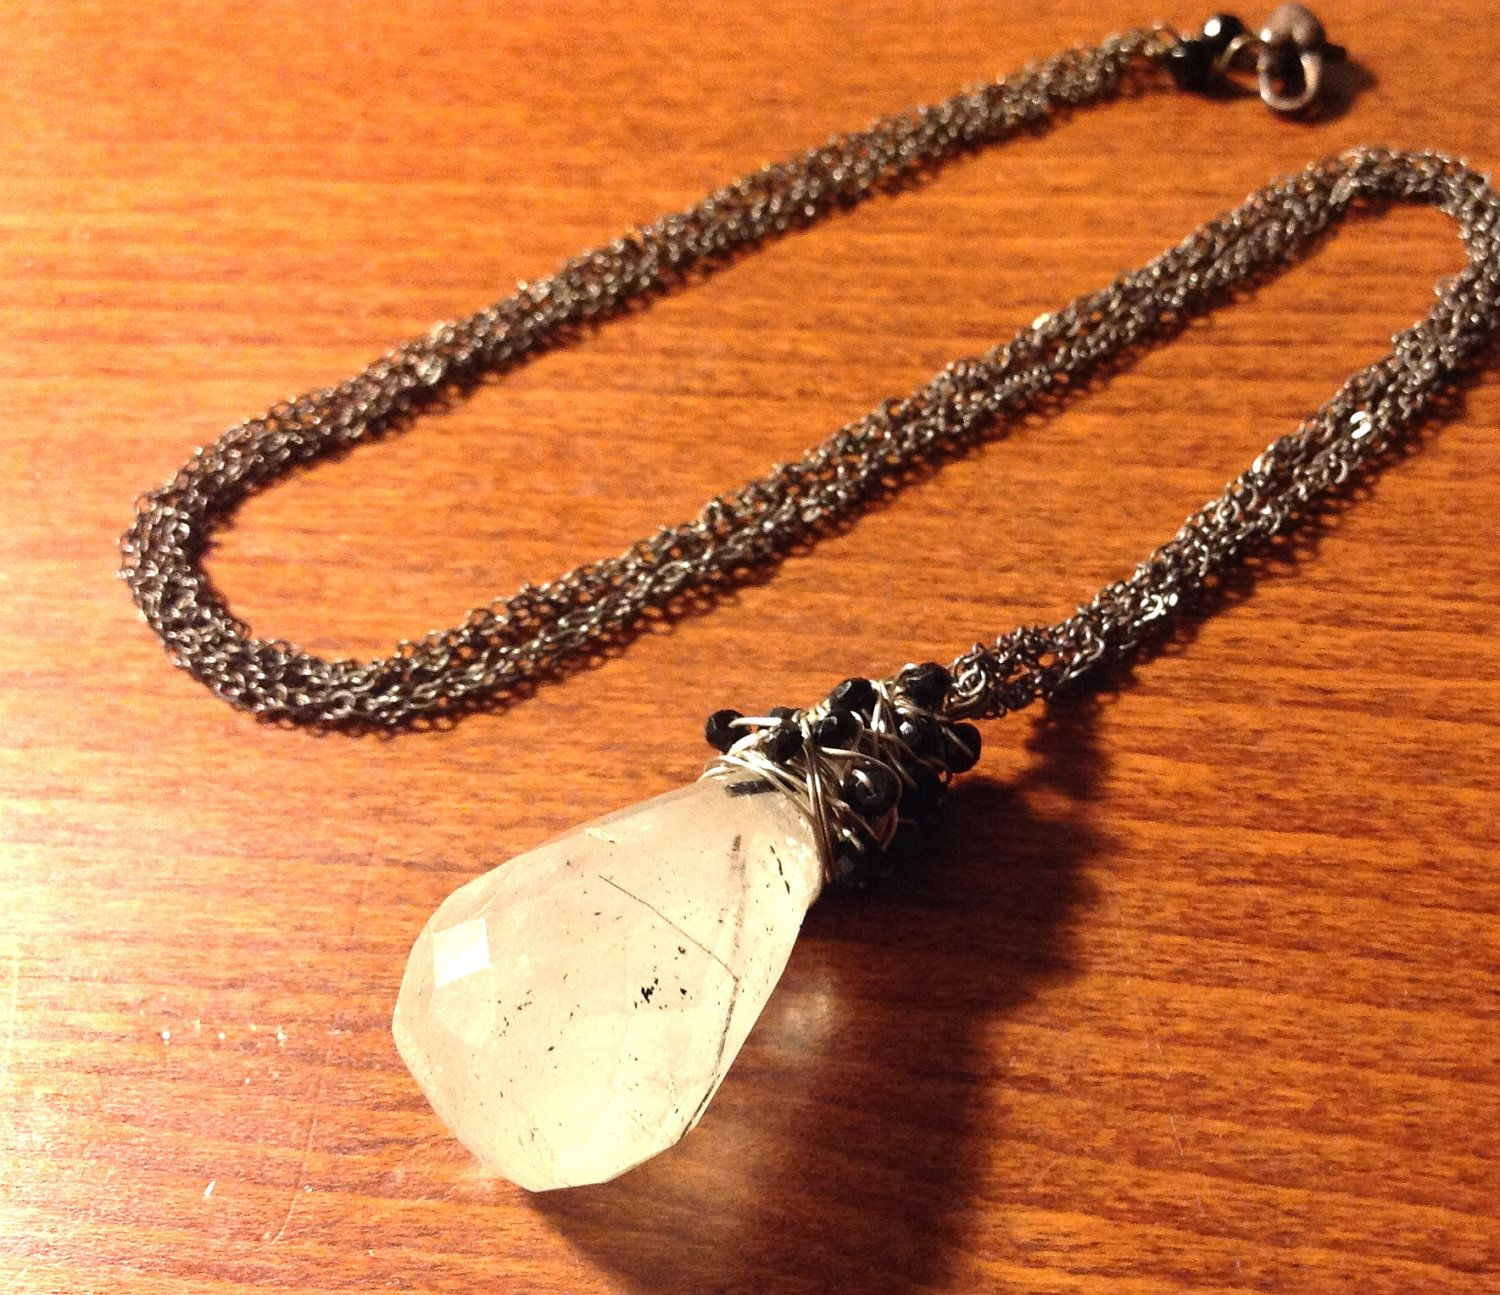 Tourmalated Quartz on Long Twisted Silver Chain with Black Tourmaline Accents. $130.00, via Etsy.